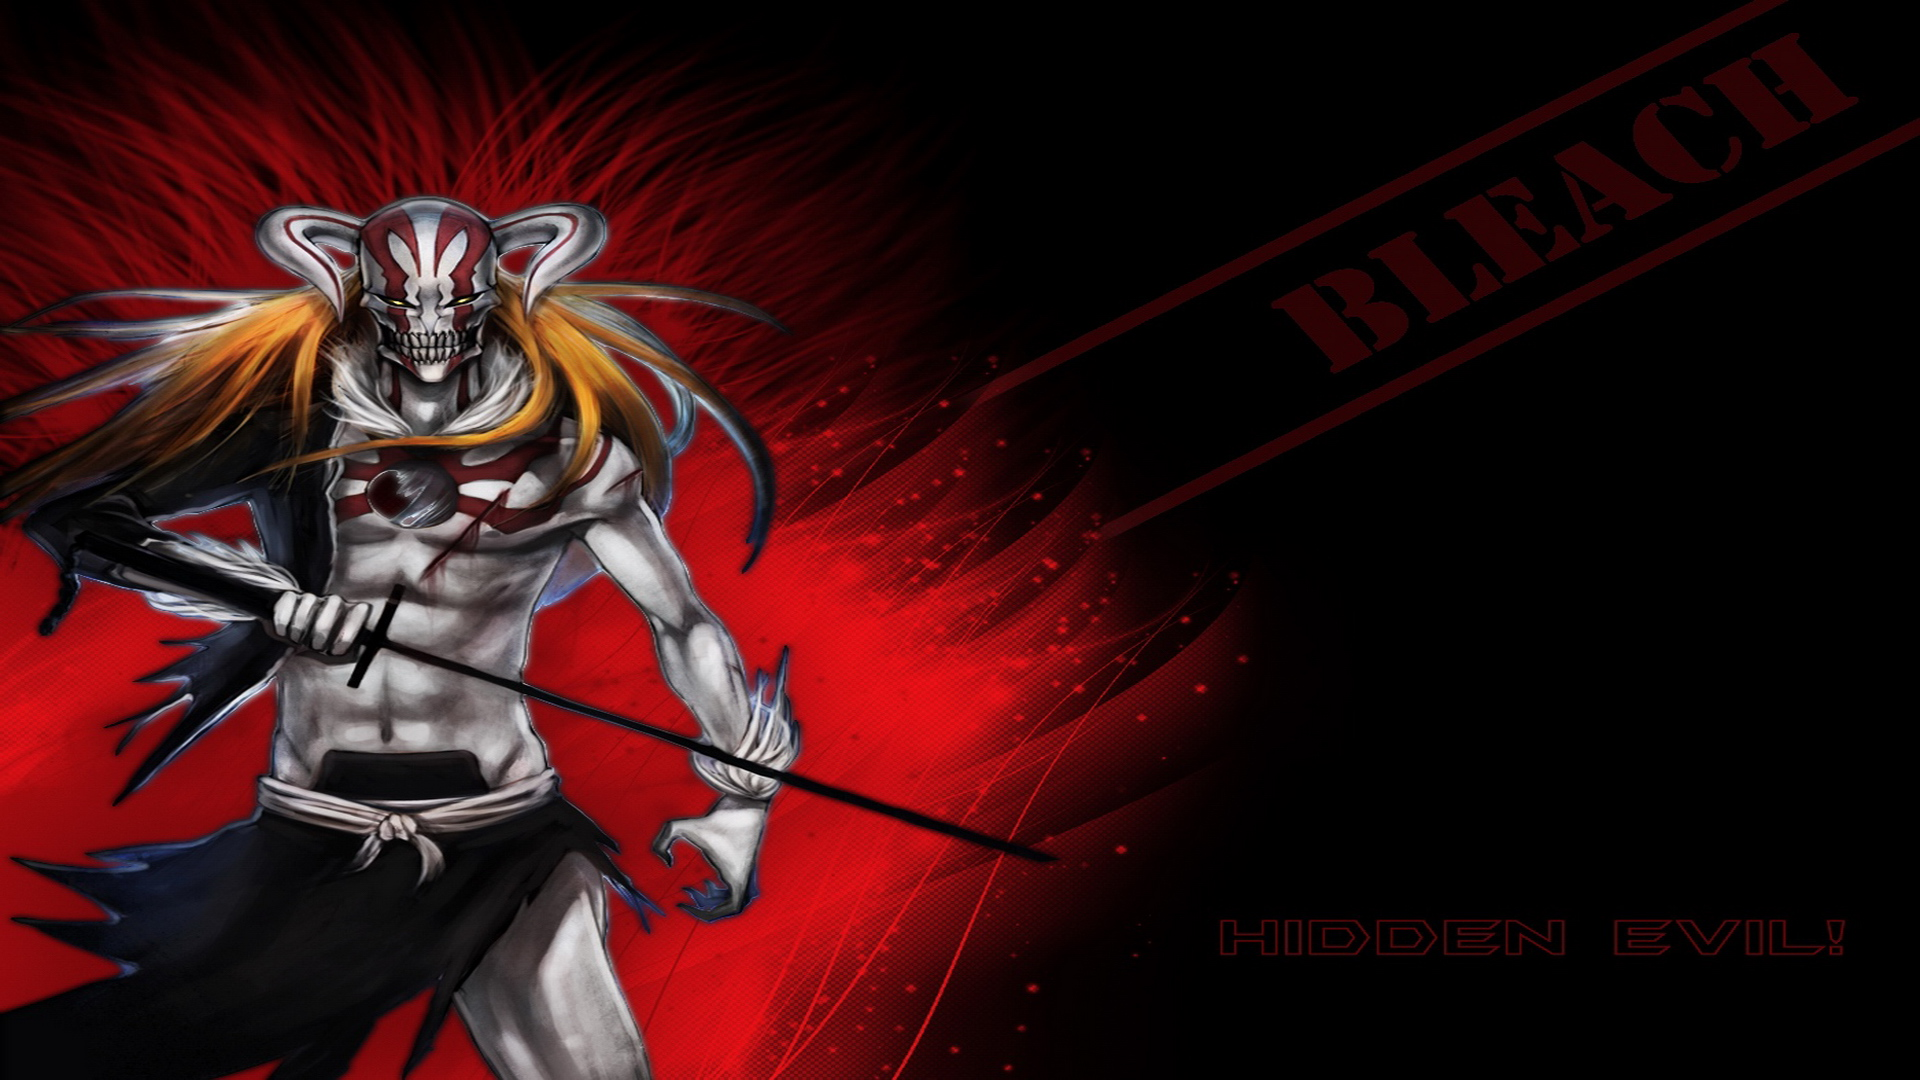 bleach wallpaper 1920 x 1080 - photo #35